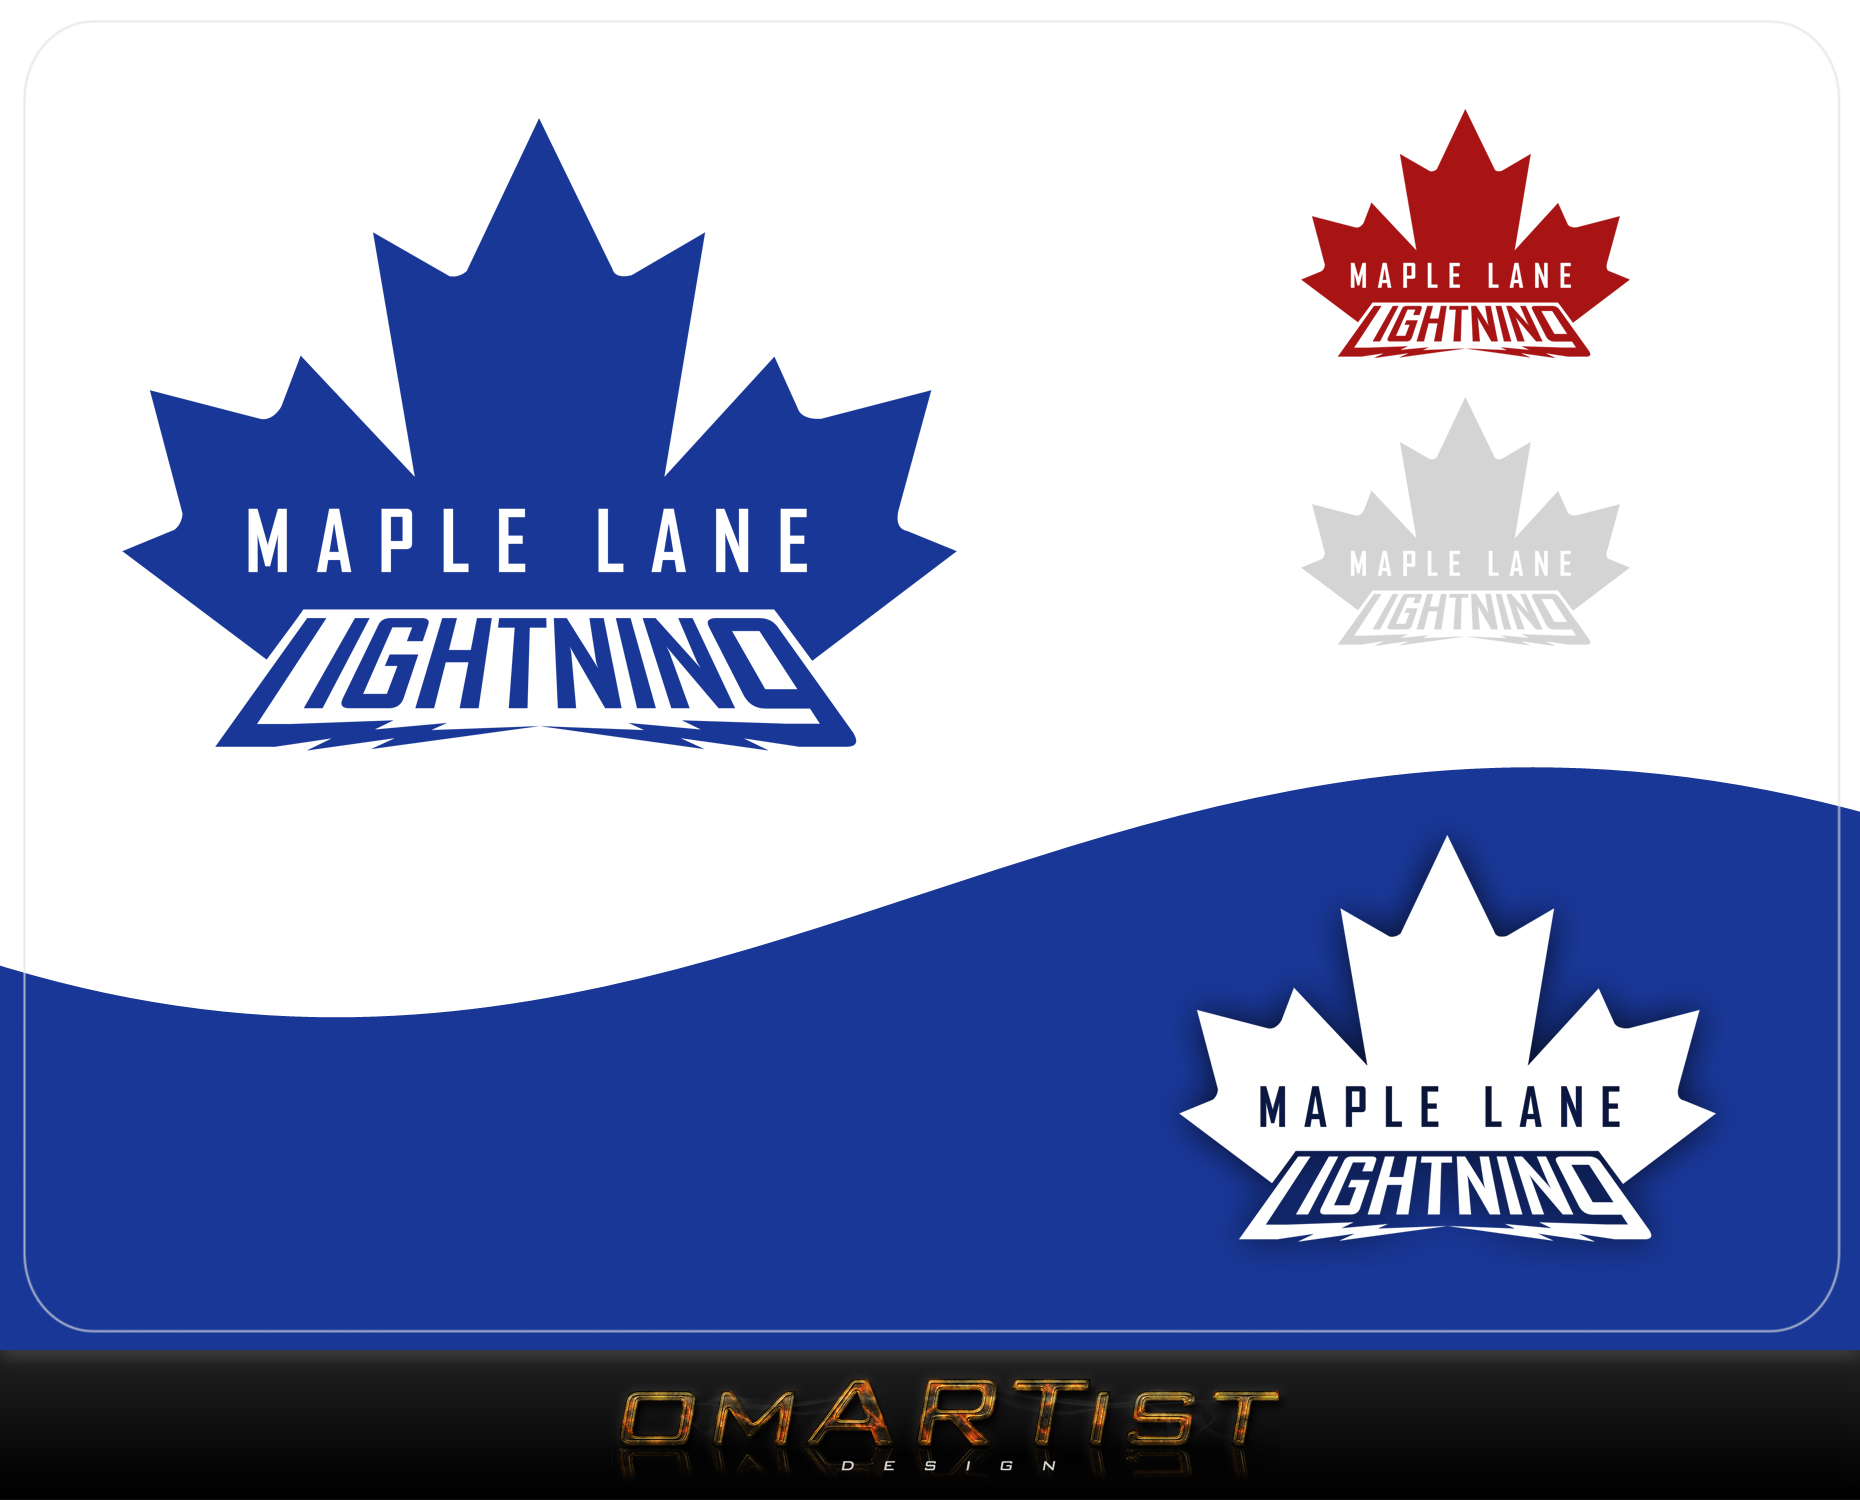 Logo Design by omARTist - Entry No. 161 in the Logo Design Contest Maple Lane Logo Design.